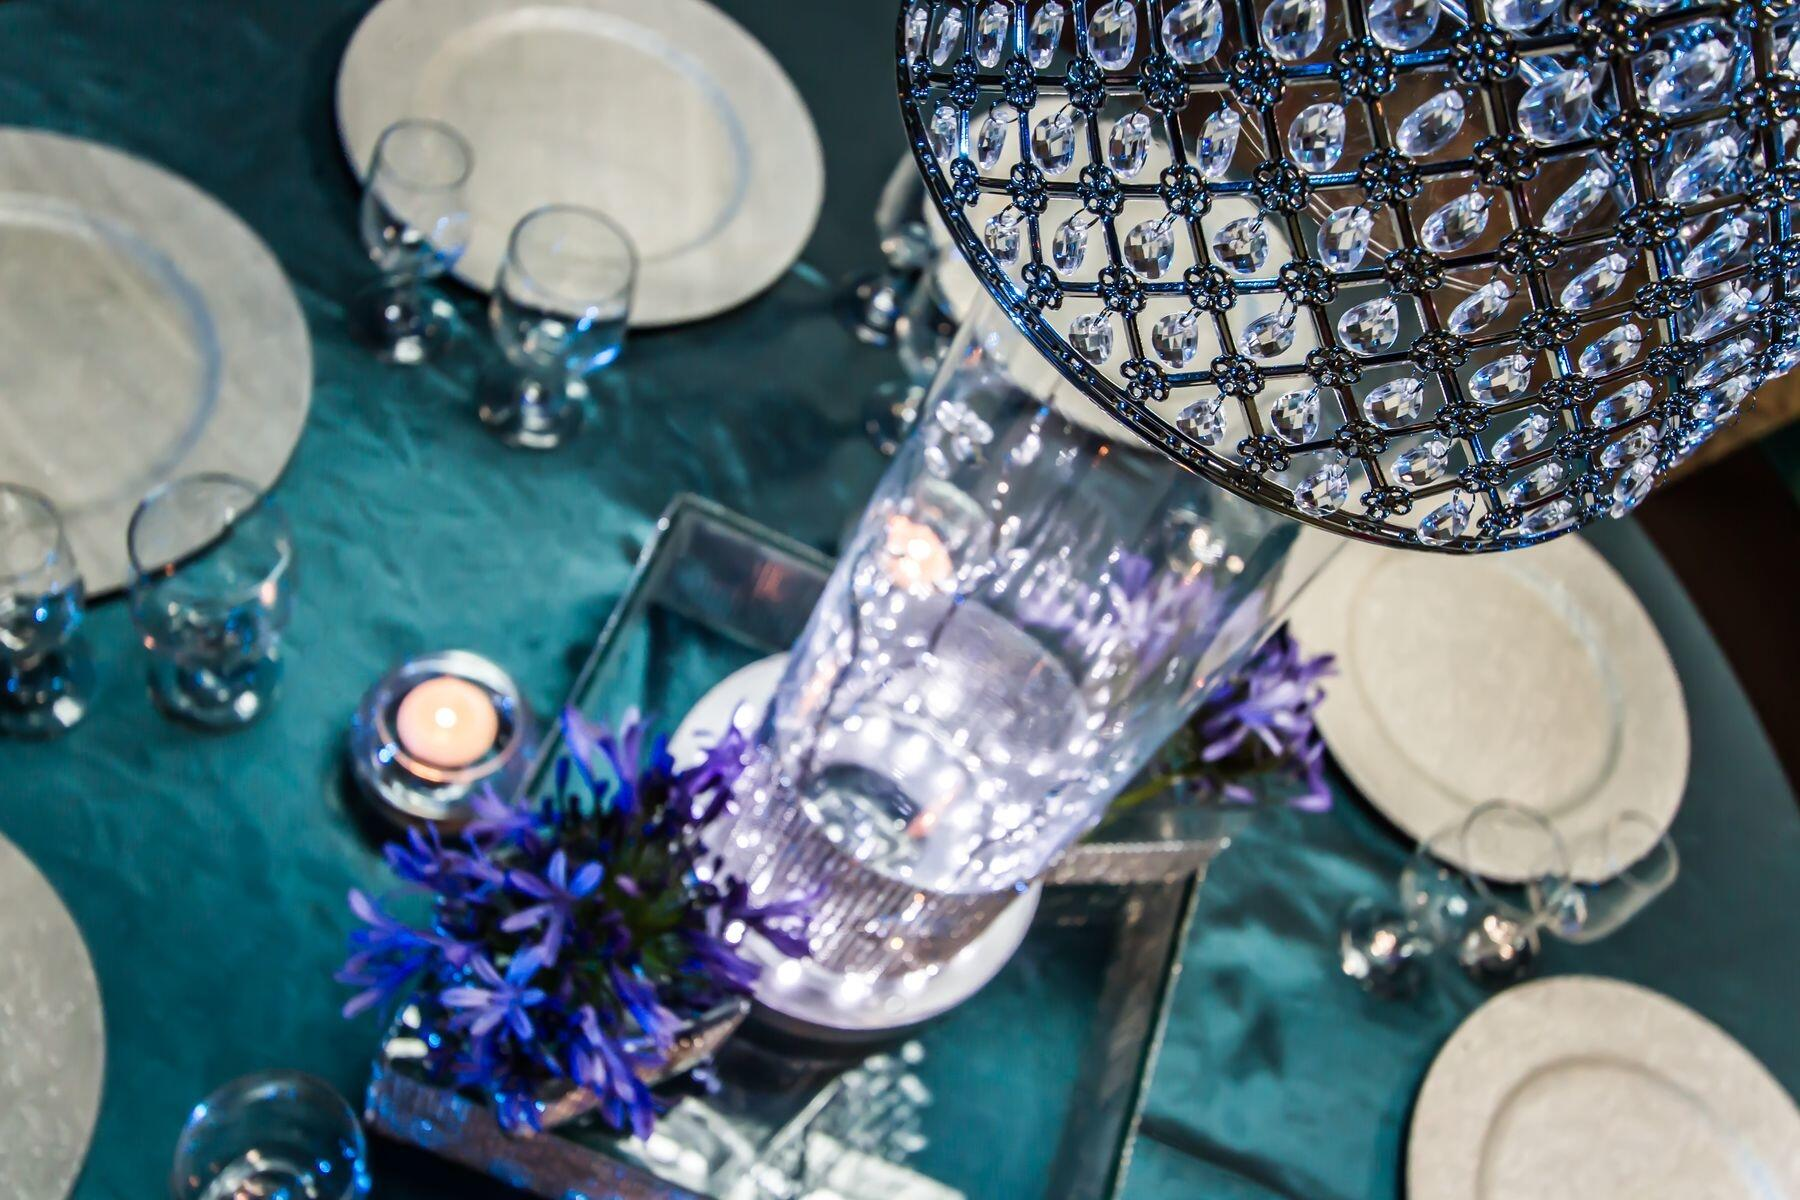 Crystal accented centerpiece set at banquet table